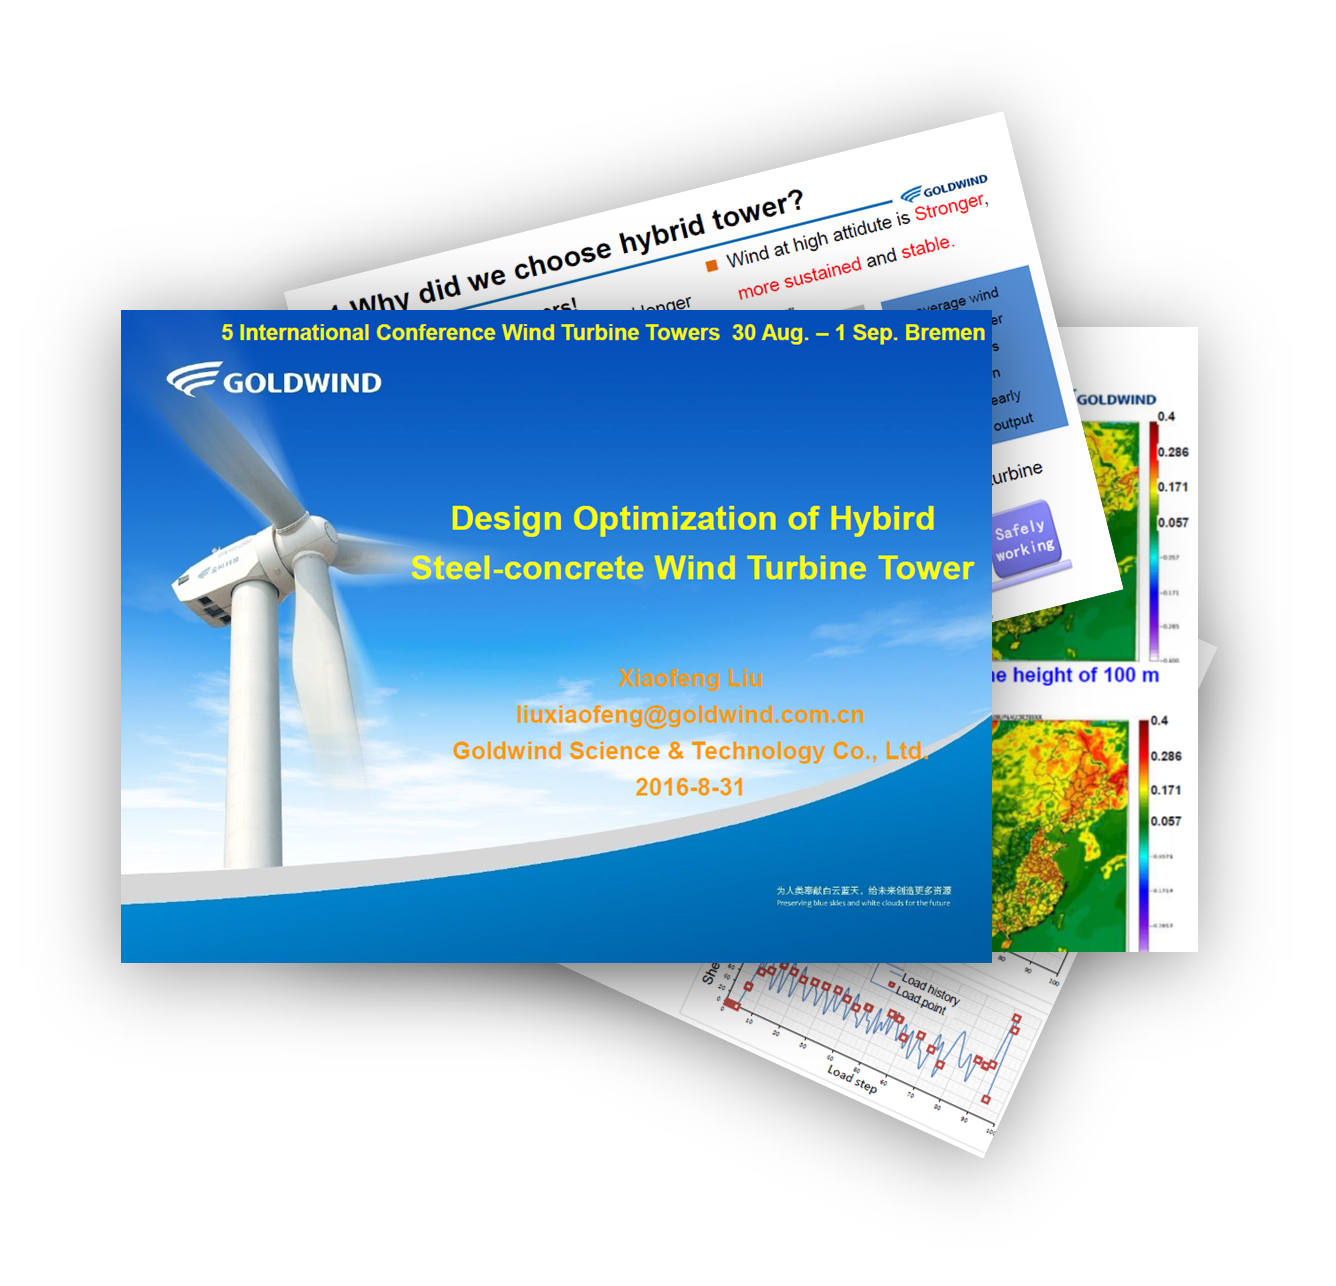 Goldwind presents Design Optimization of Hybird Steel-concrete Wind Turbine Tower